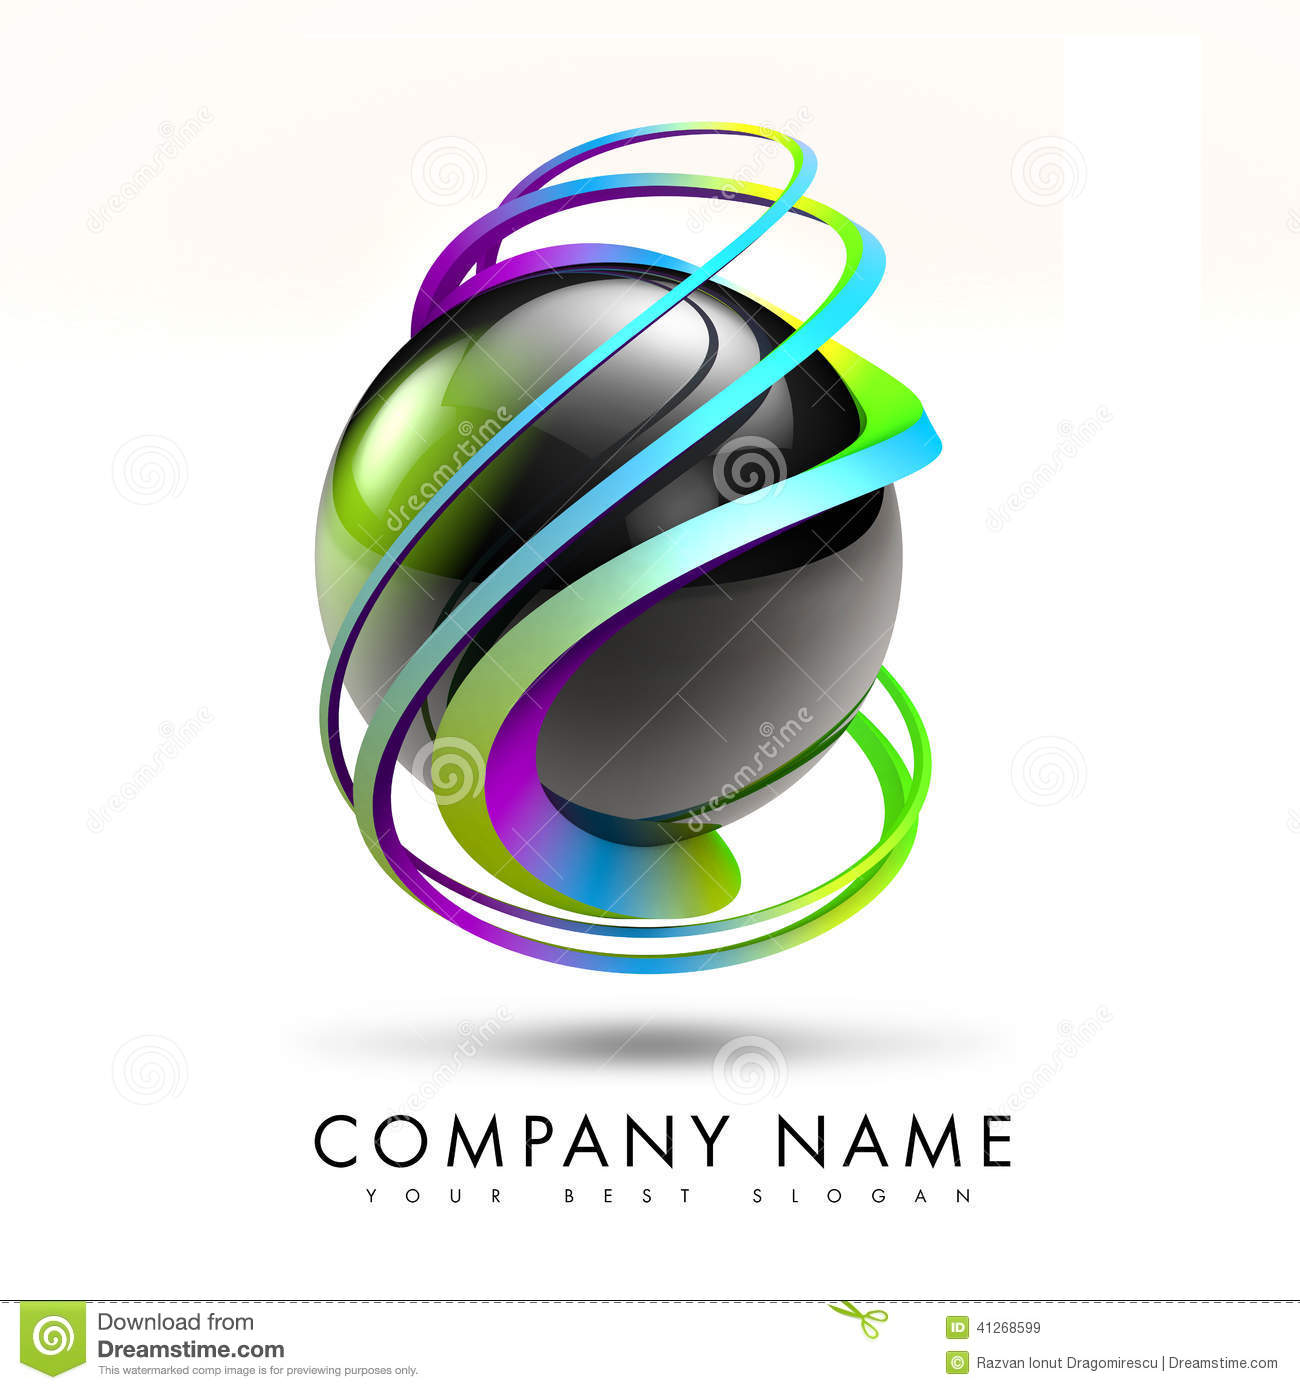 Z 3d Logo Design 3D Twist Logo Design Royalty